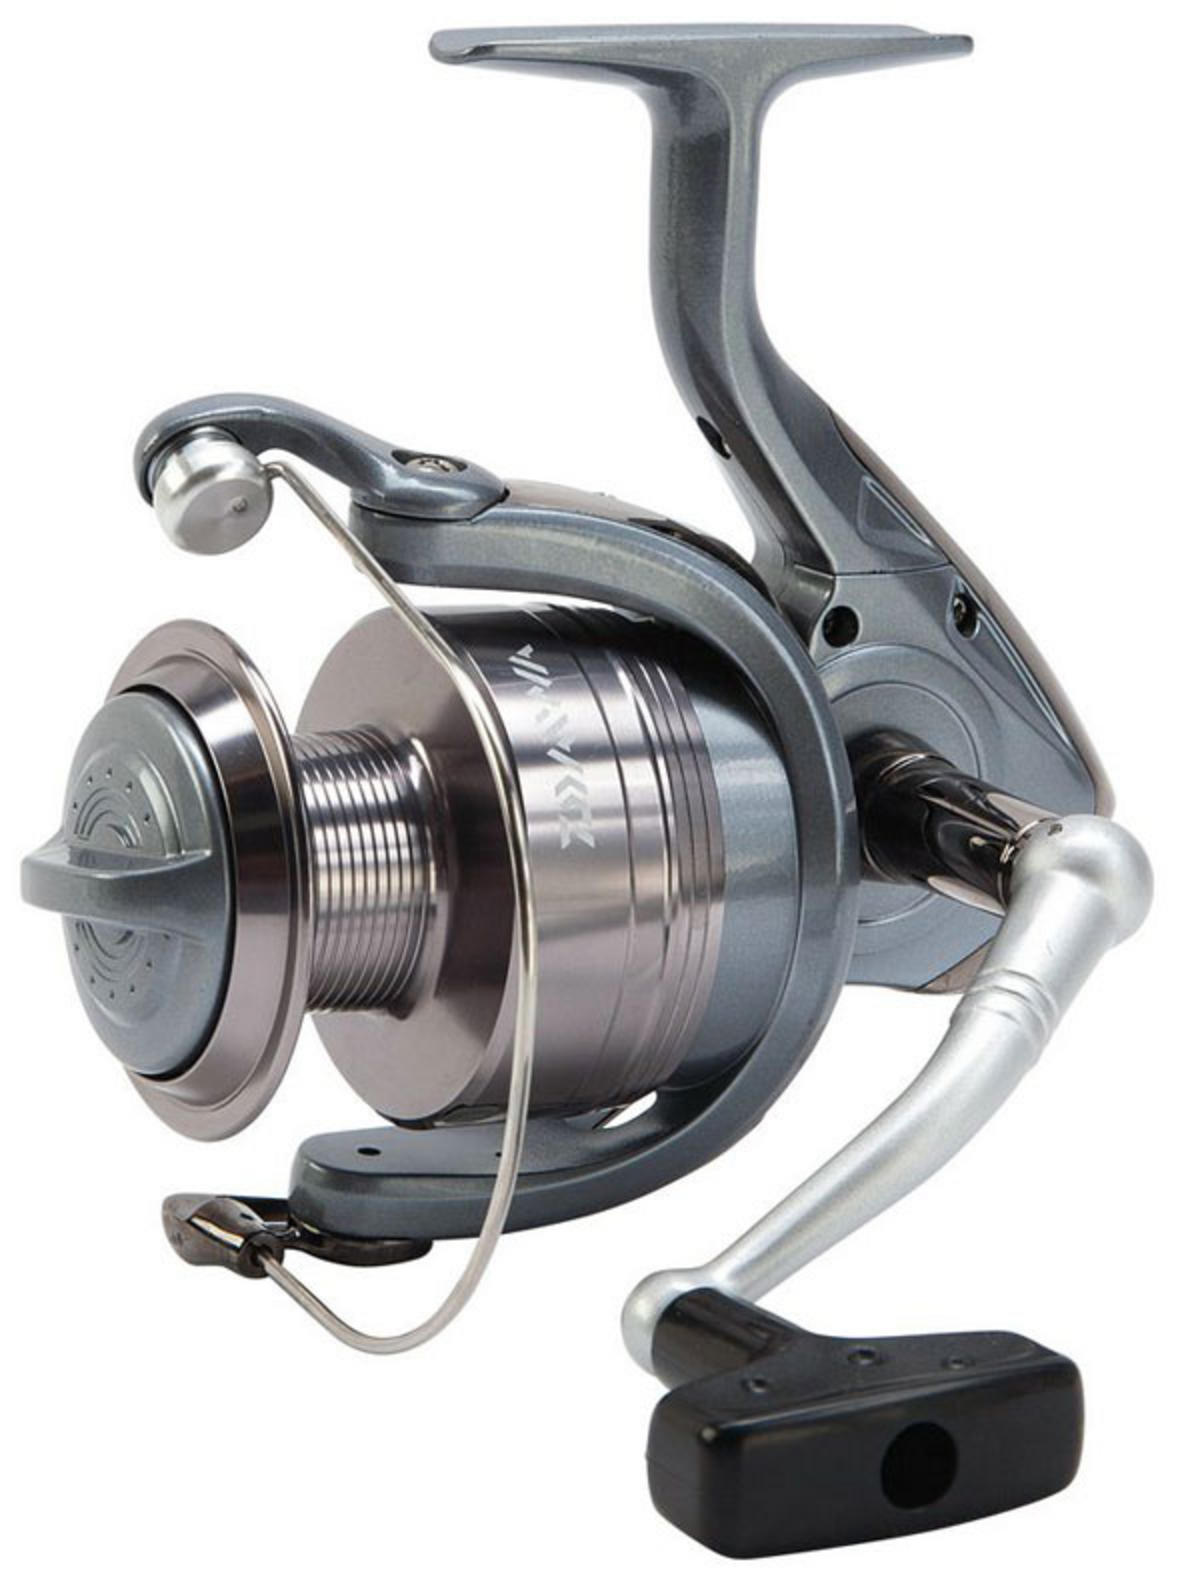 NEW DAIWA AG 6000AB SEA CARP FISHING SPINNING REEL AG6000AB